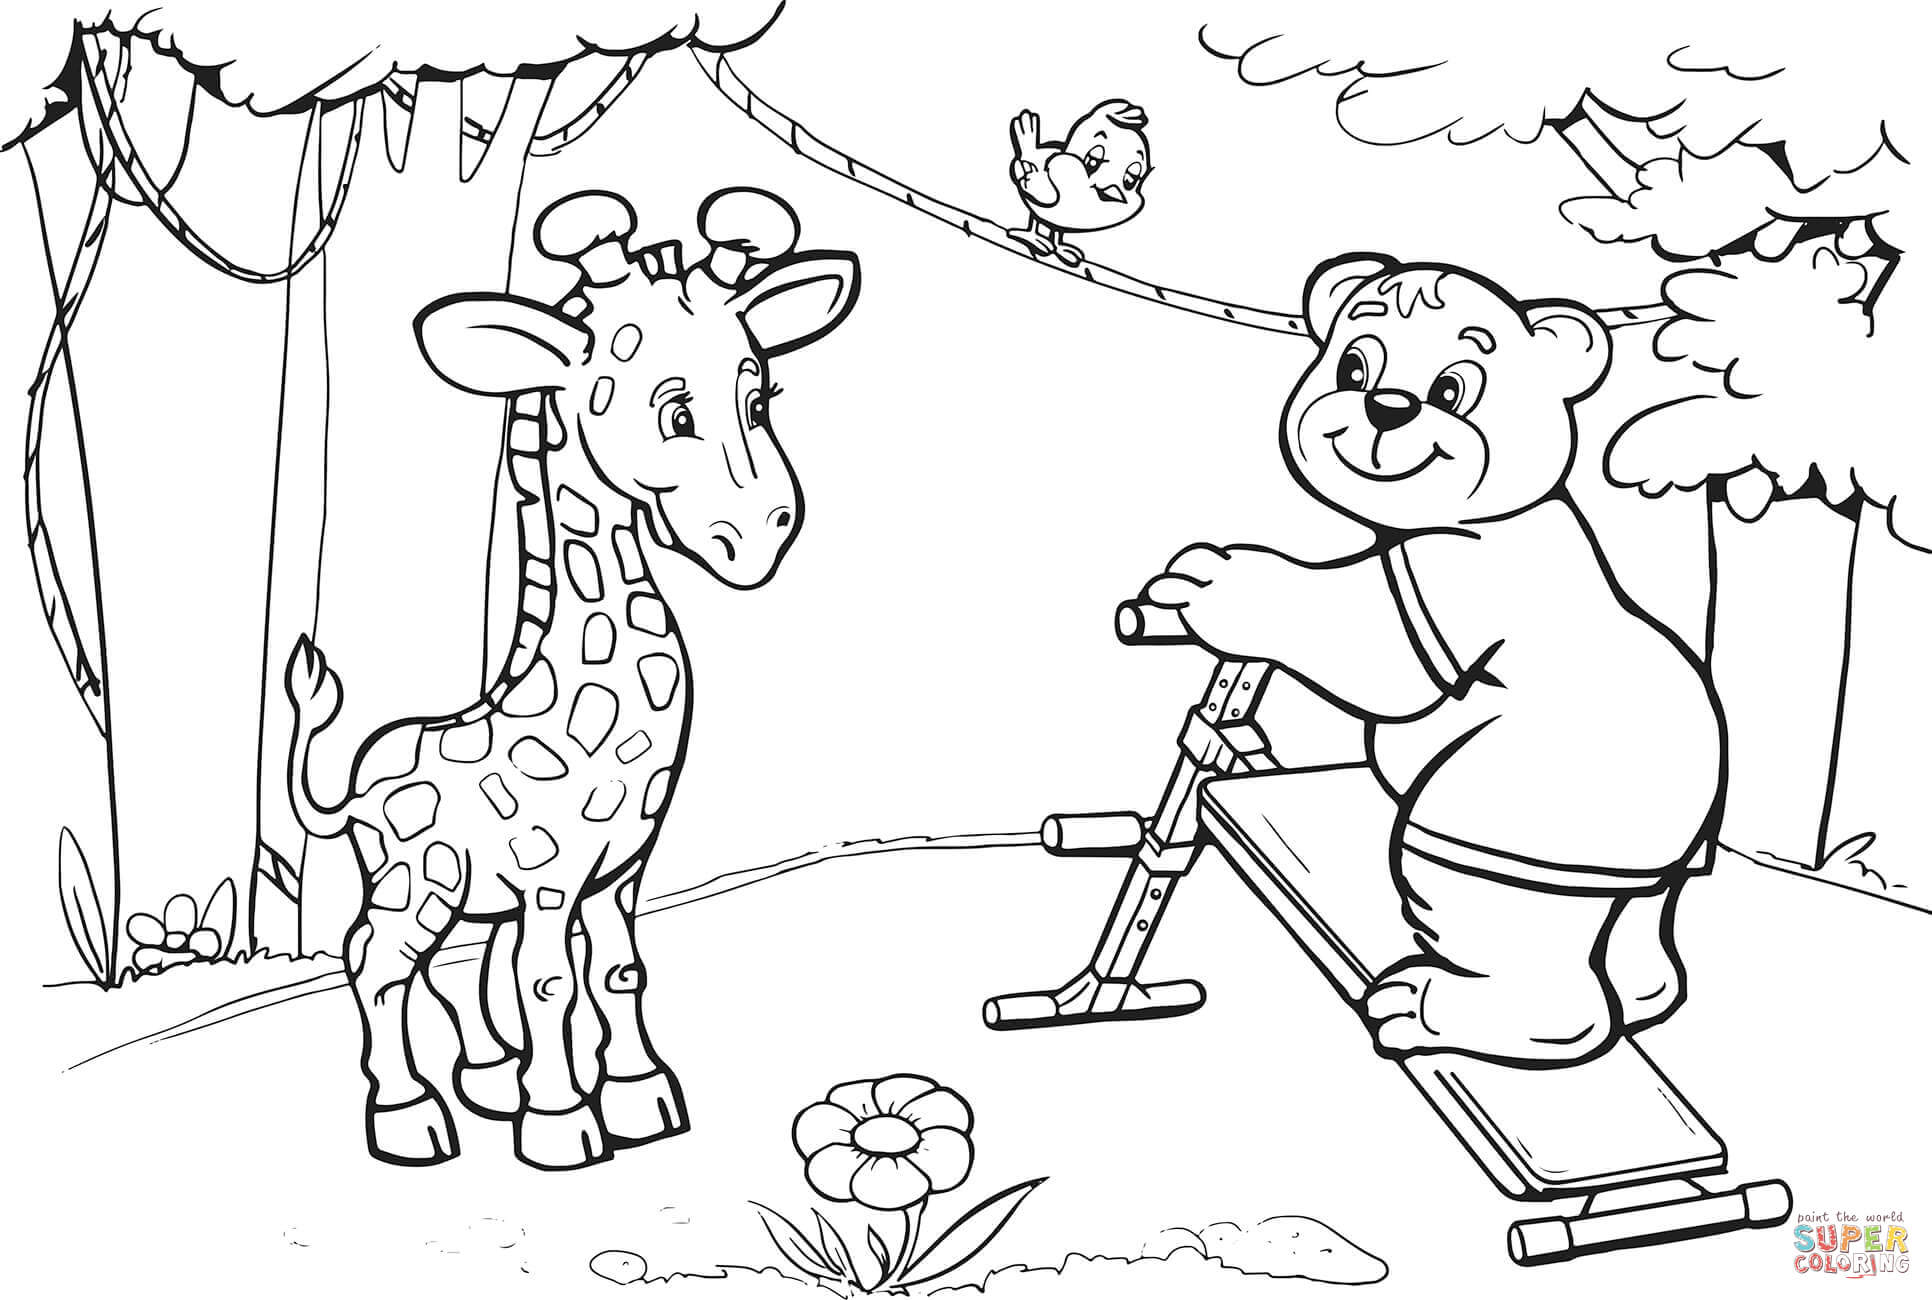 Giraffe And Bear Want To Do Abs Workout Coloring Page